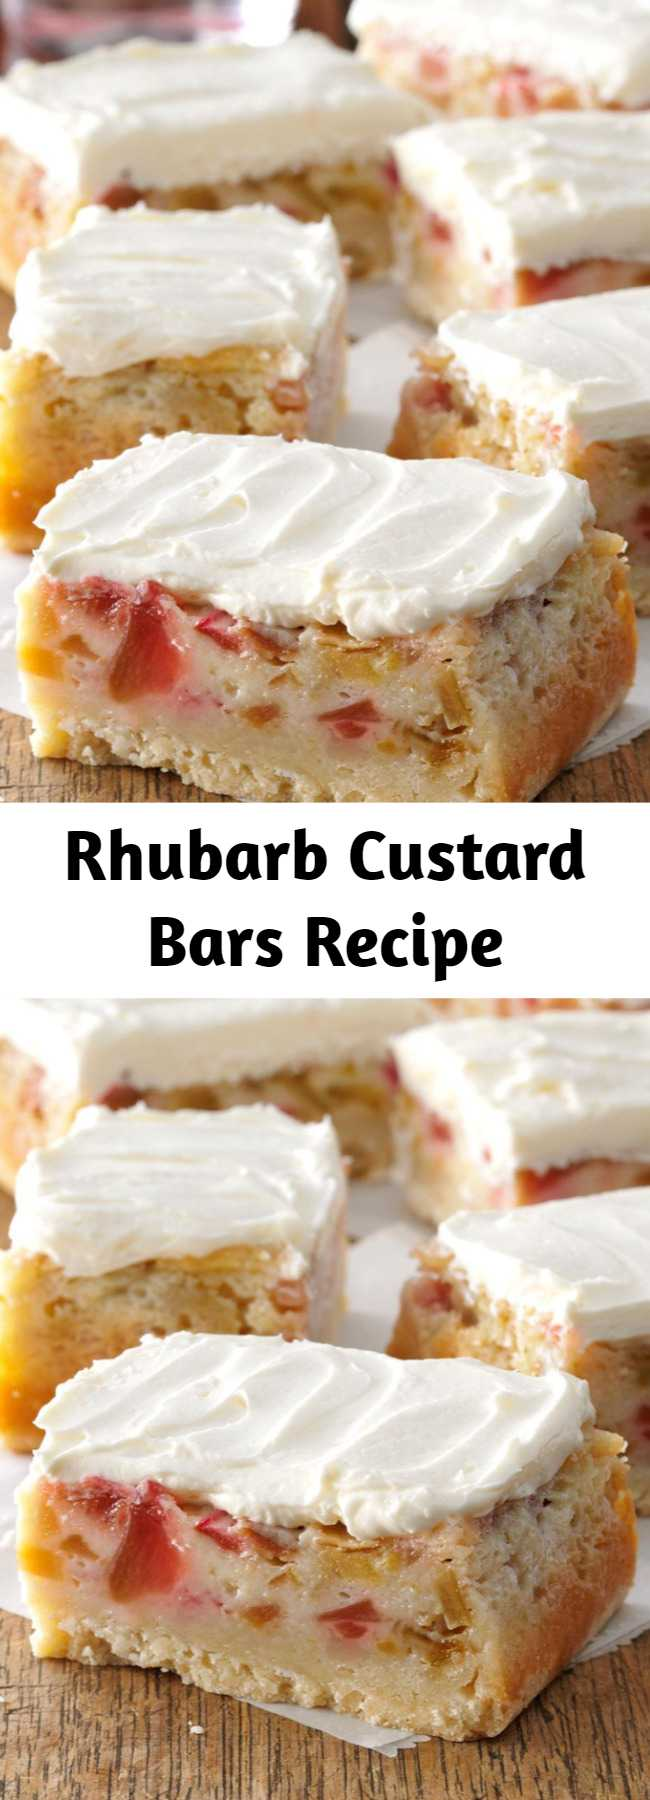 Rhubarb Custard Bars Recipe - Once I tried these rich, gooey bars, I just had to have the recipe so I could make them for my family and friends. The shortbreadlike crust and the rhubarb and custard layers inspire people to find rhubarb that they can use to fix a batch for themselves.